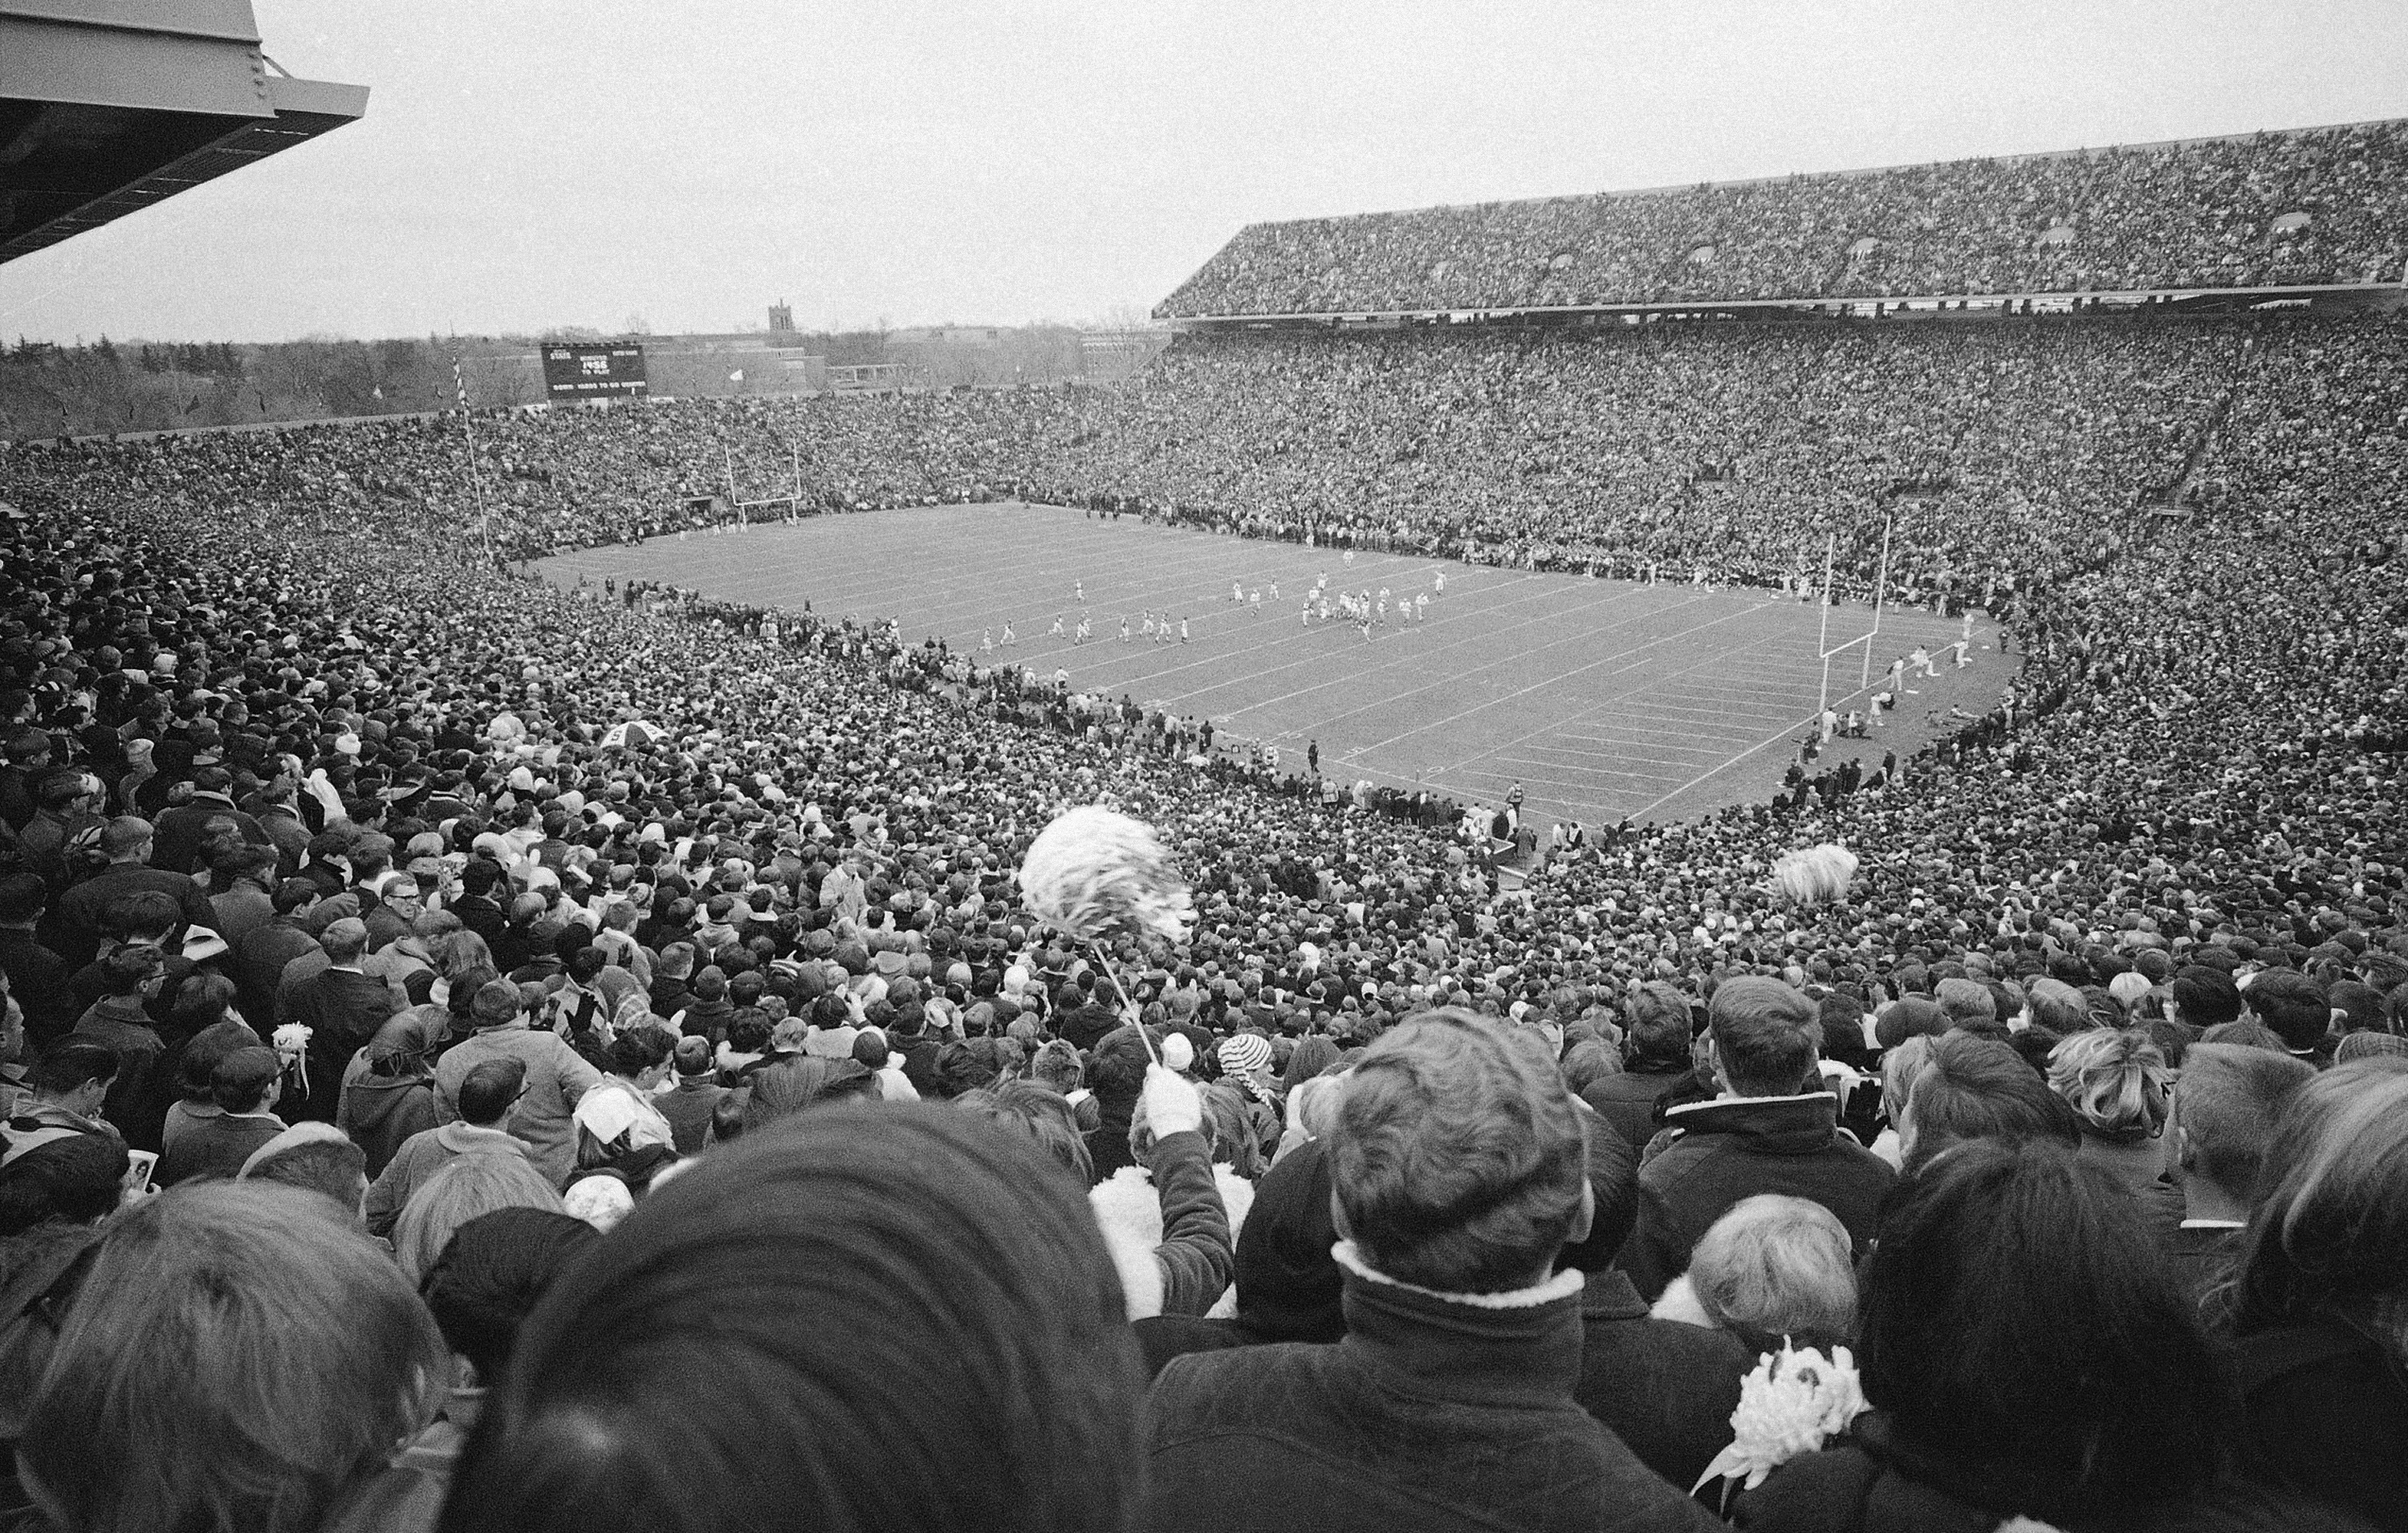 FILE - In this Nov. 19, 1966, file photo, an overflow crowd, estimated at more than 80,000, watch the Michigan State against Notre Dame college football game in East Lansing, Mich. It was the final regular-season game for Michigan State and second-to-last